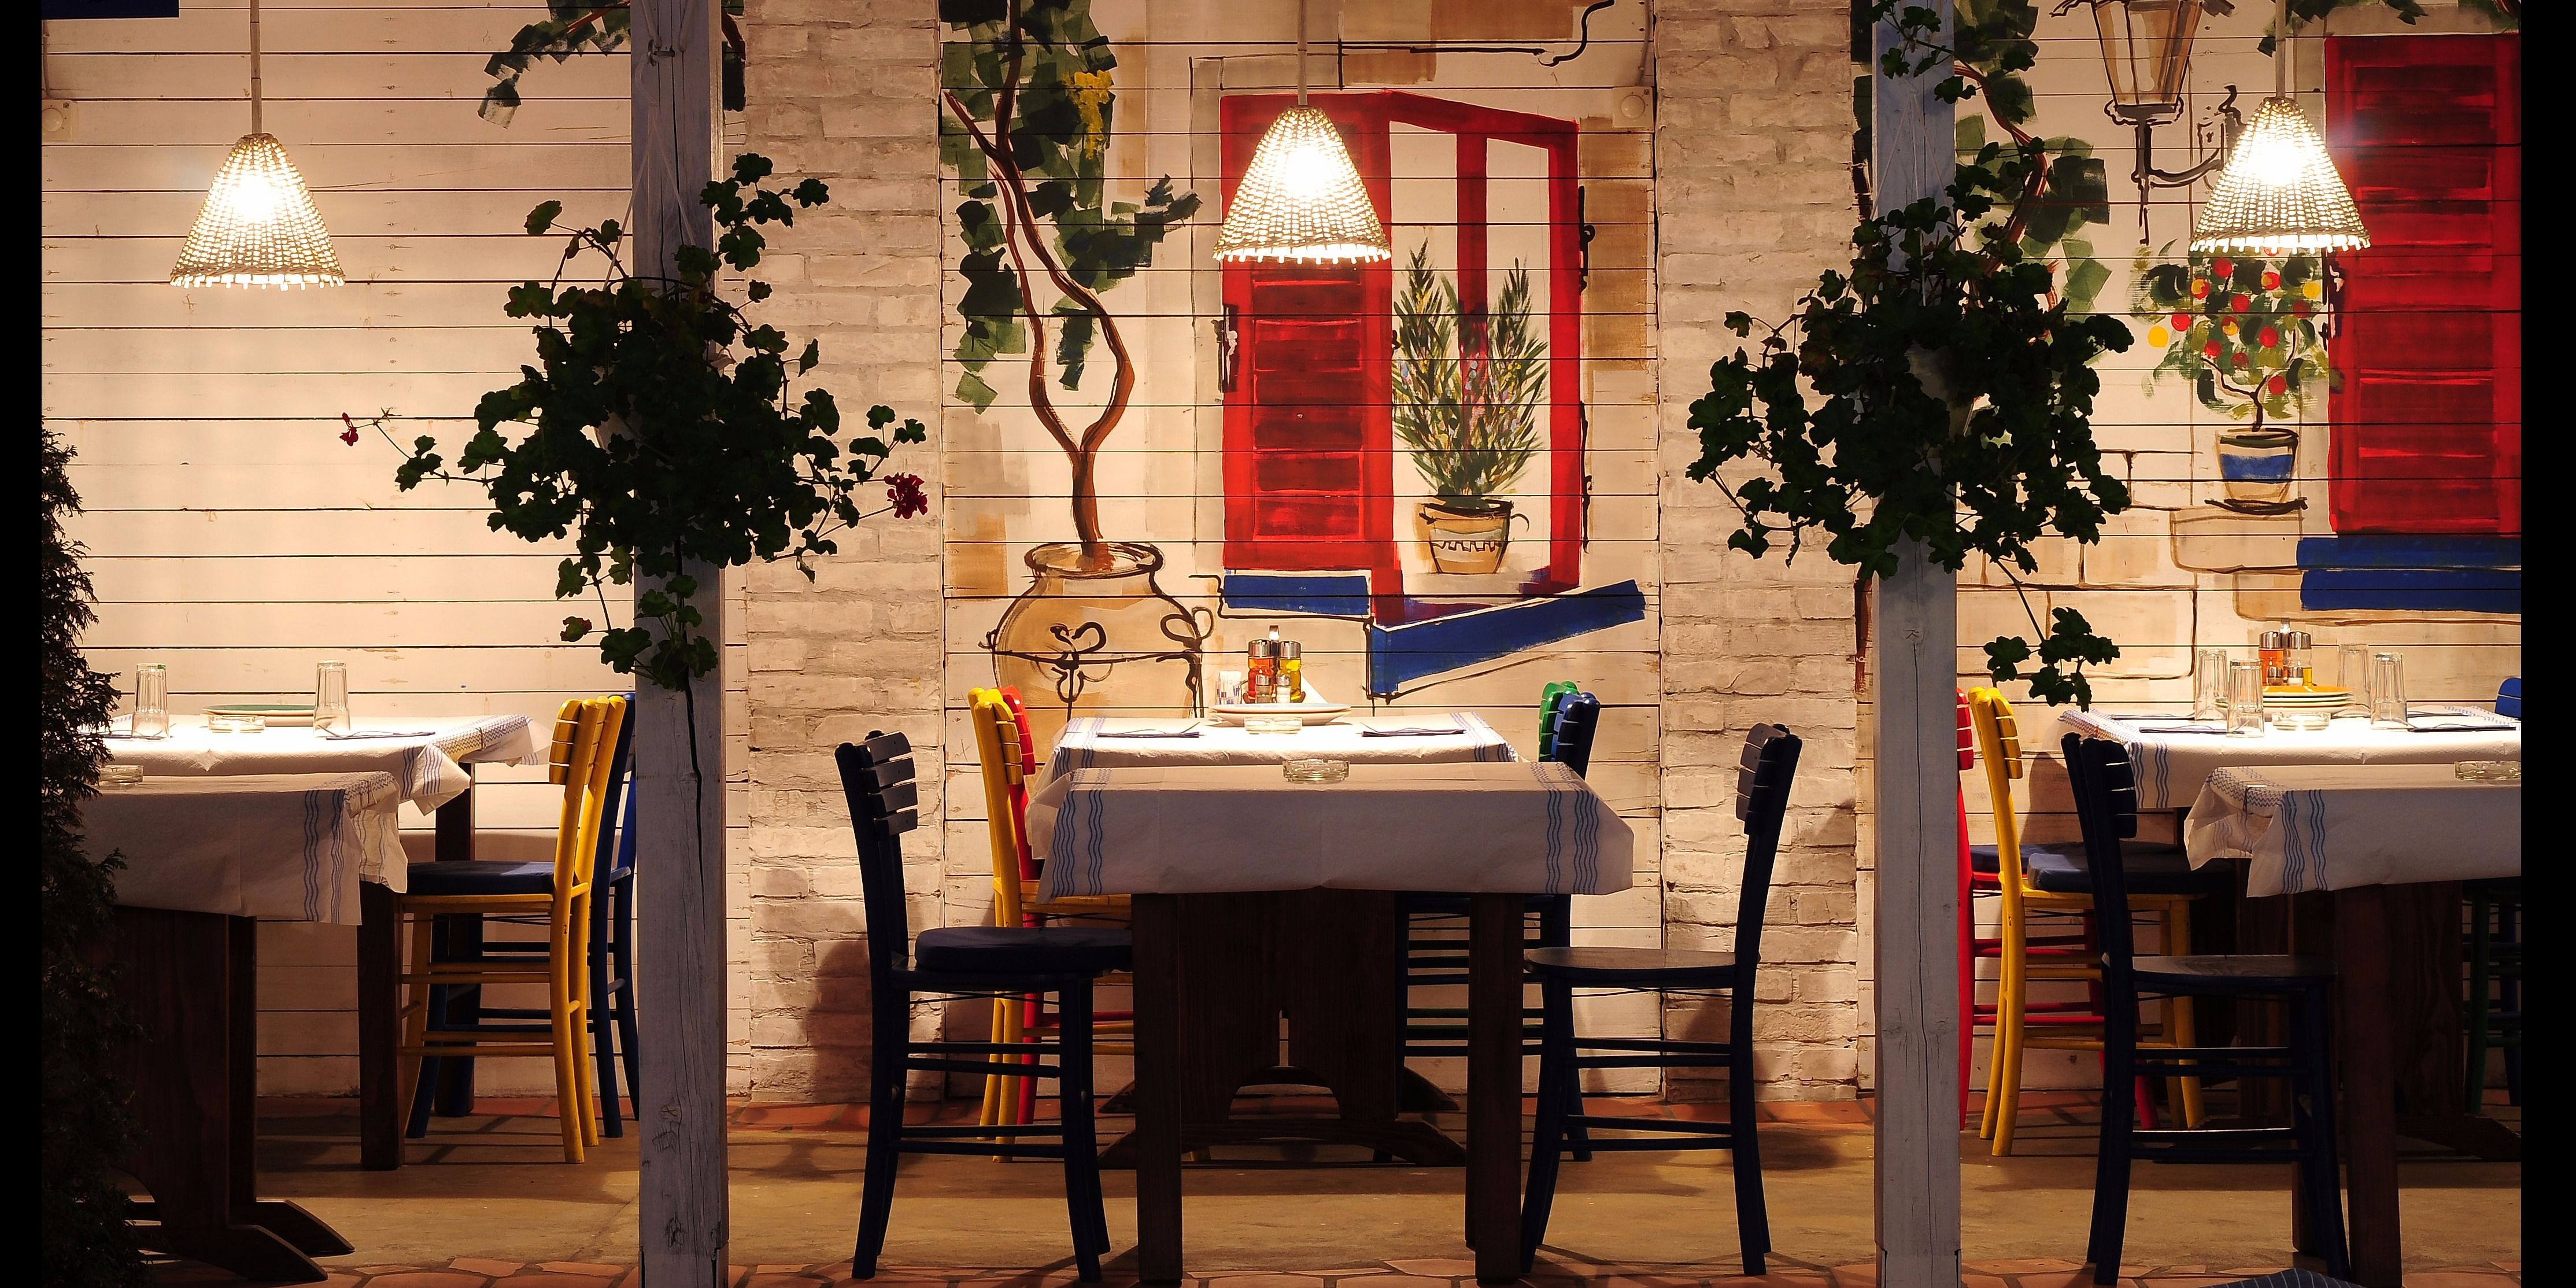 The design of this Greek themed restaurant suggests that the owner is dedicated to promoting Mediterranean culture and cuisine.